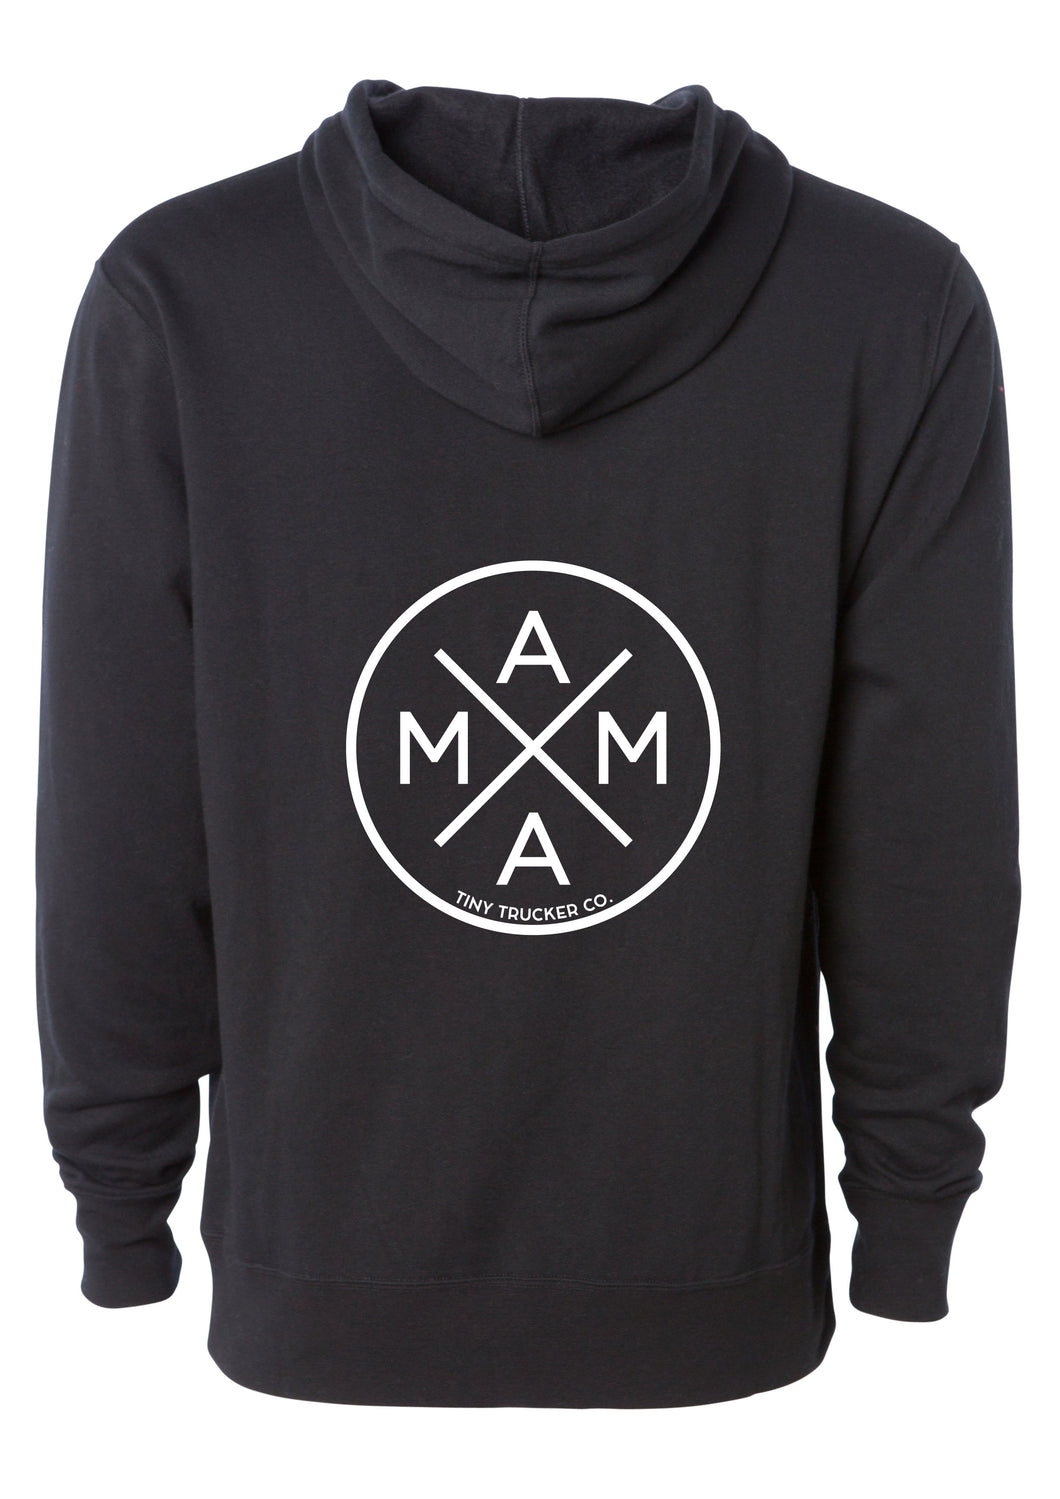 MAMA X ™ ZIP UP SWEATSHIRT